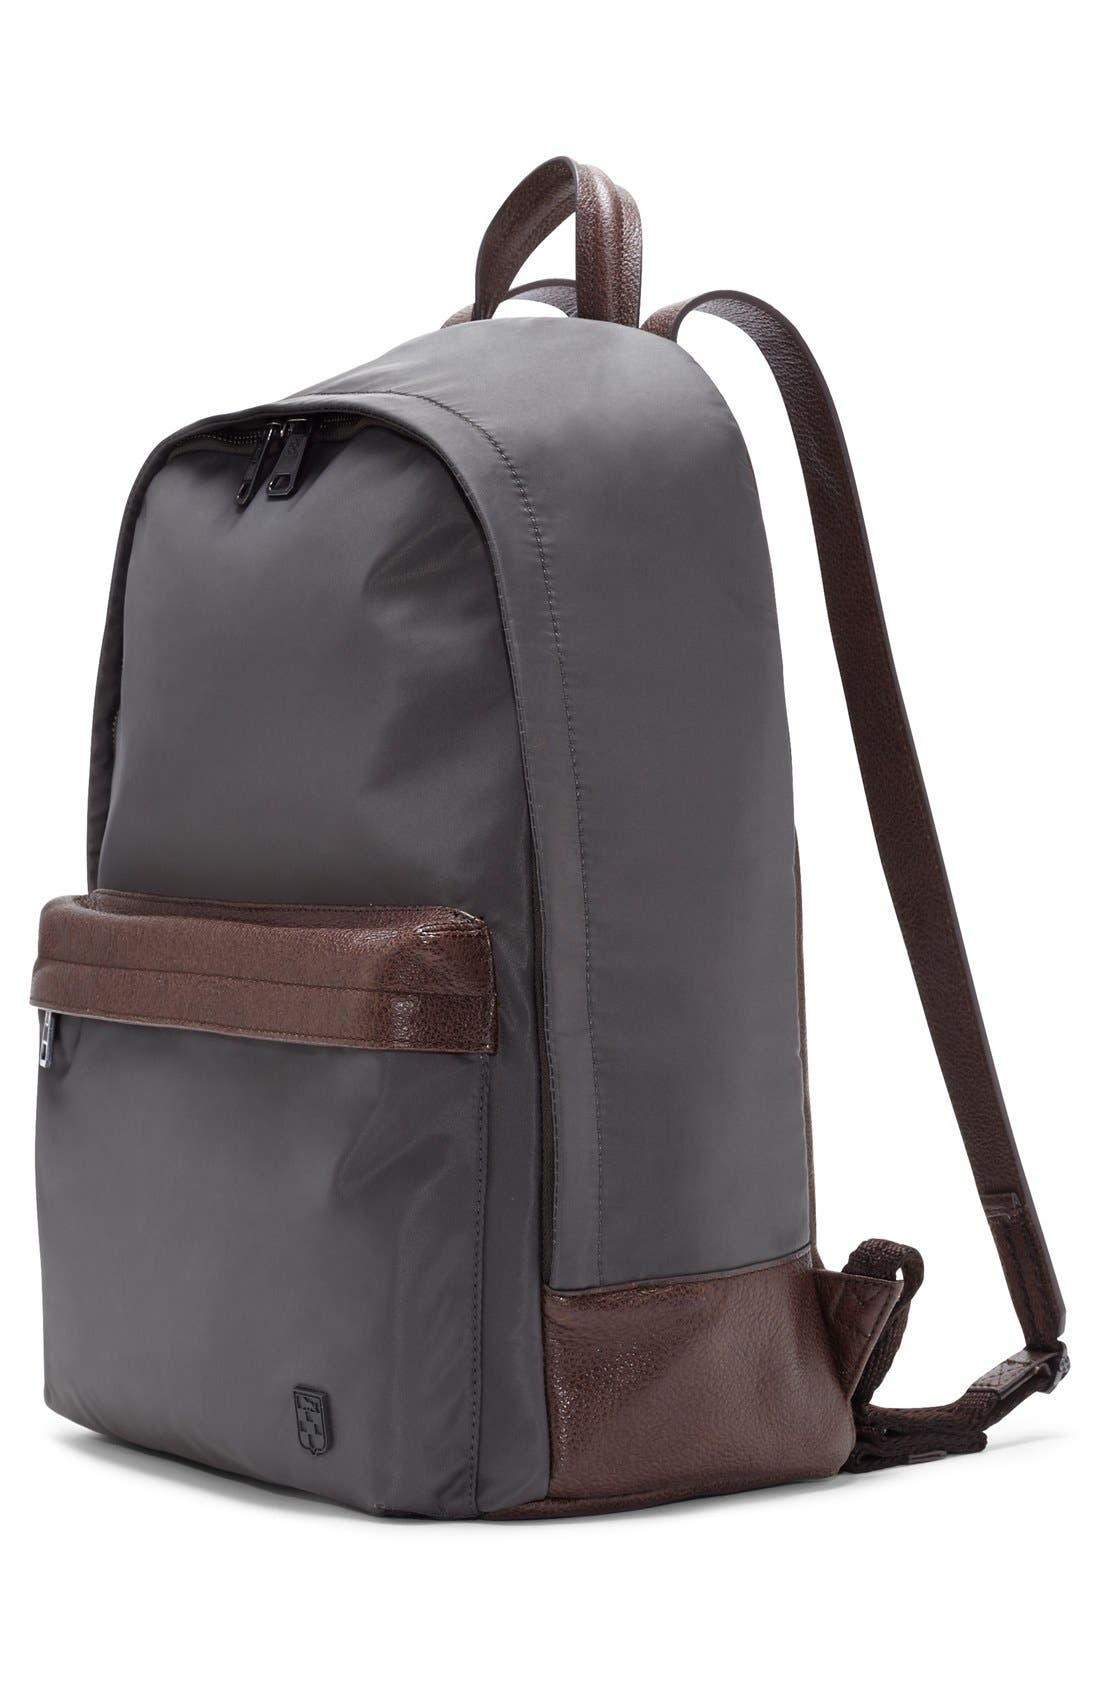 'Tolve' Nylon Backpack,                             Alternate thumbnail 4, color,                             021